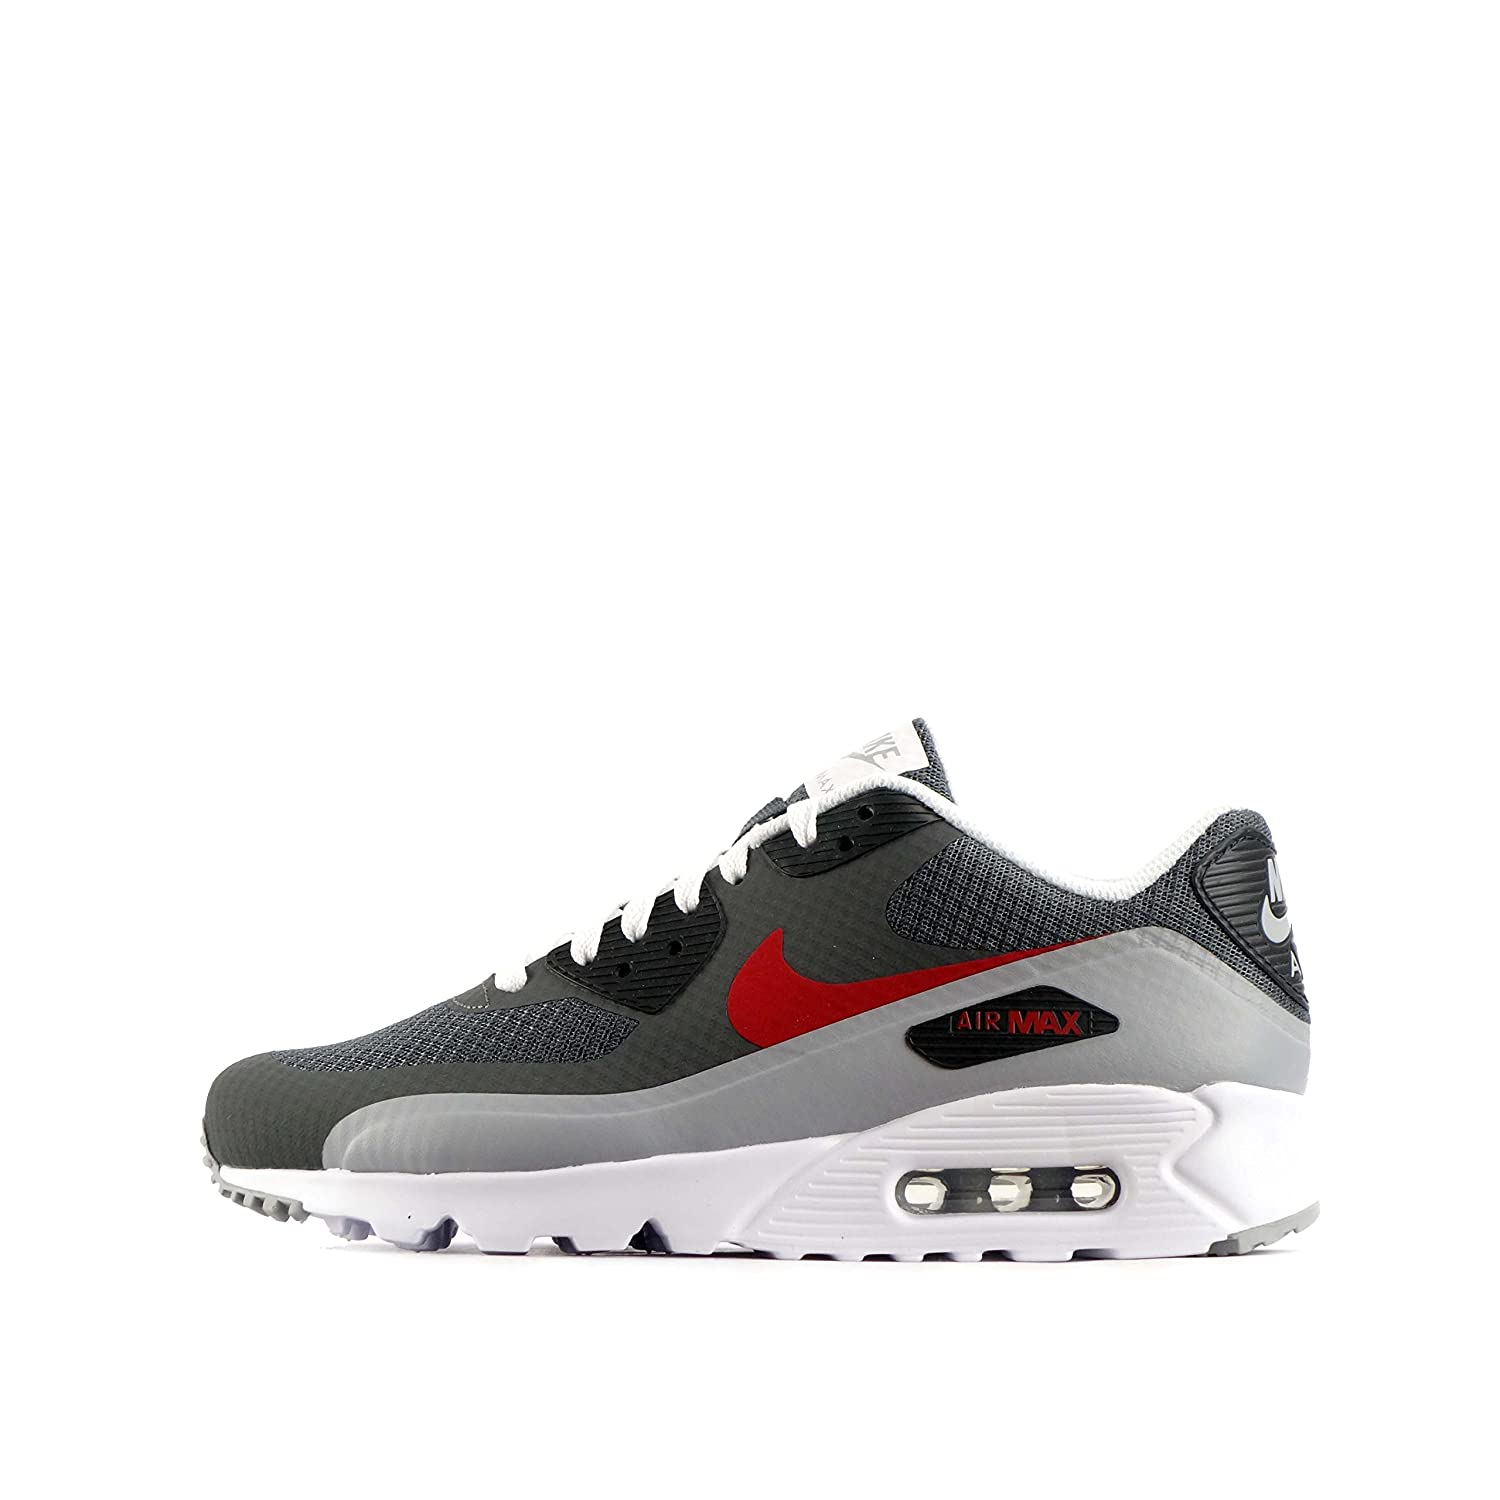 16fd5c4b7590 chic nike air max 90 ultra essential mens trainers 819474 sneakers shoes ( dark grey gym